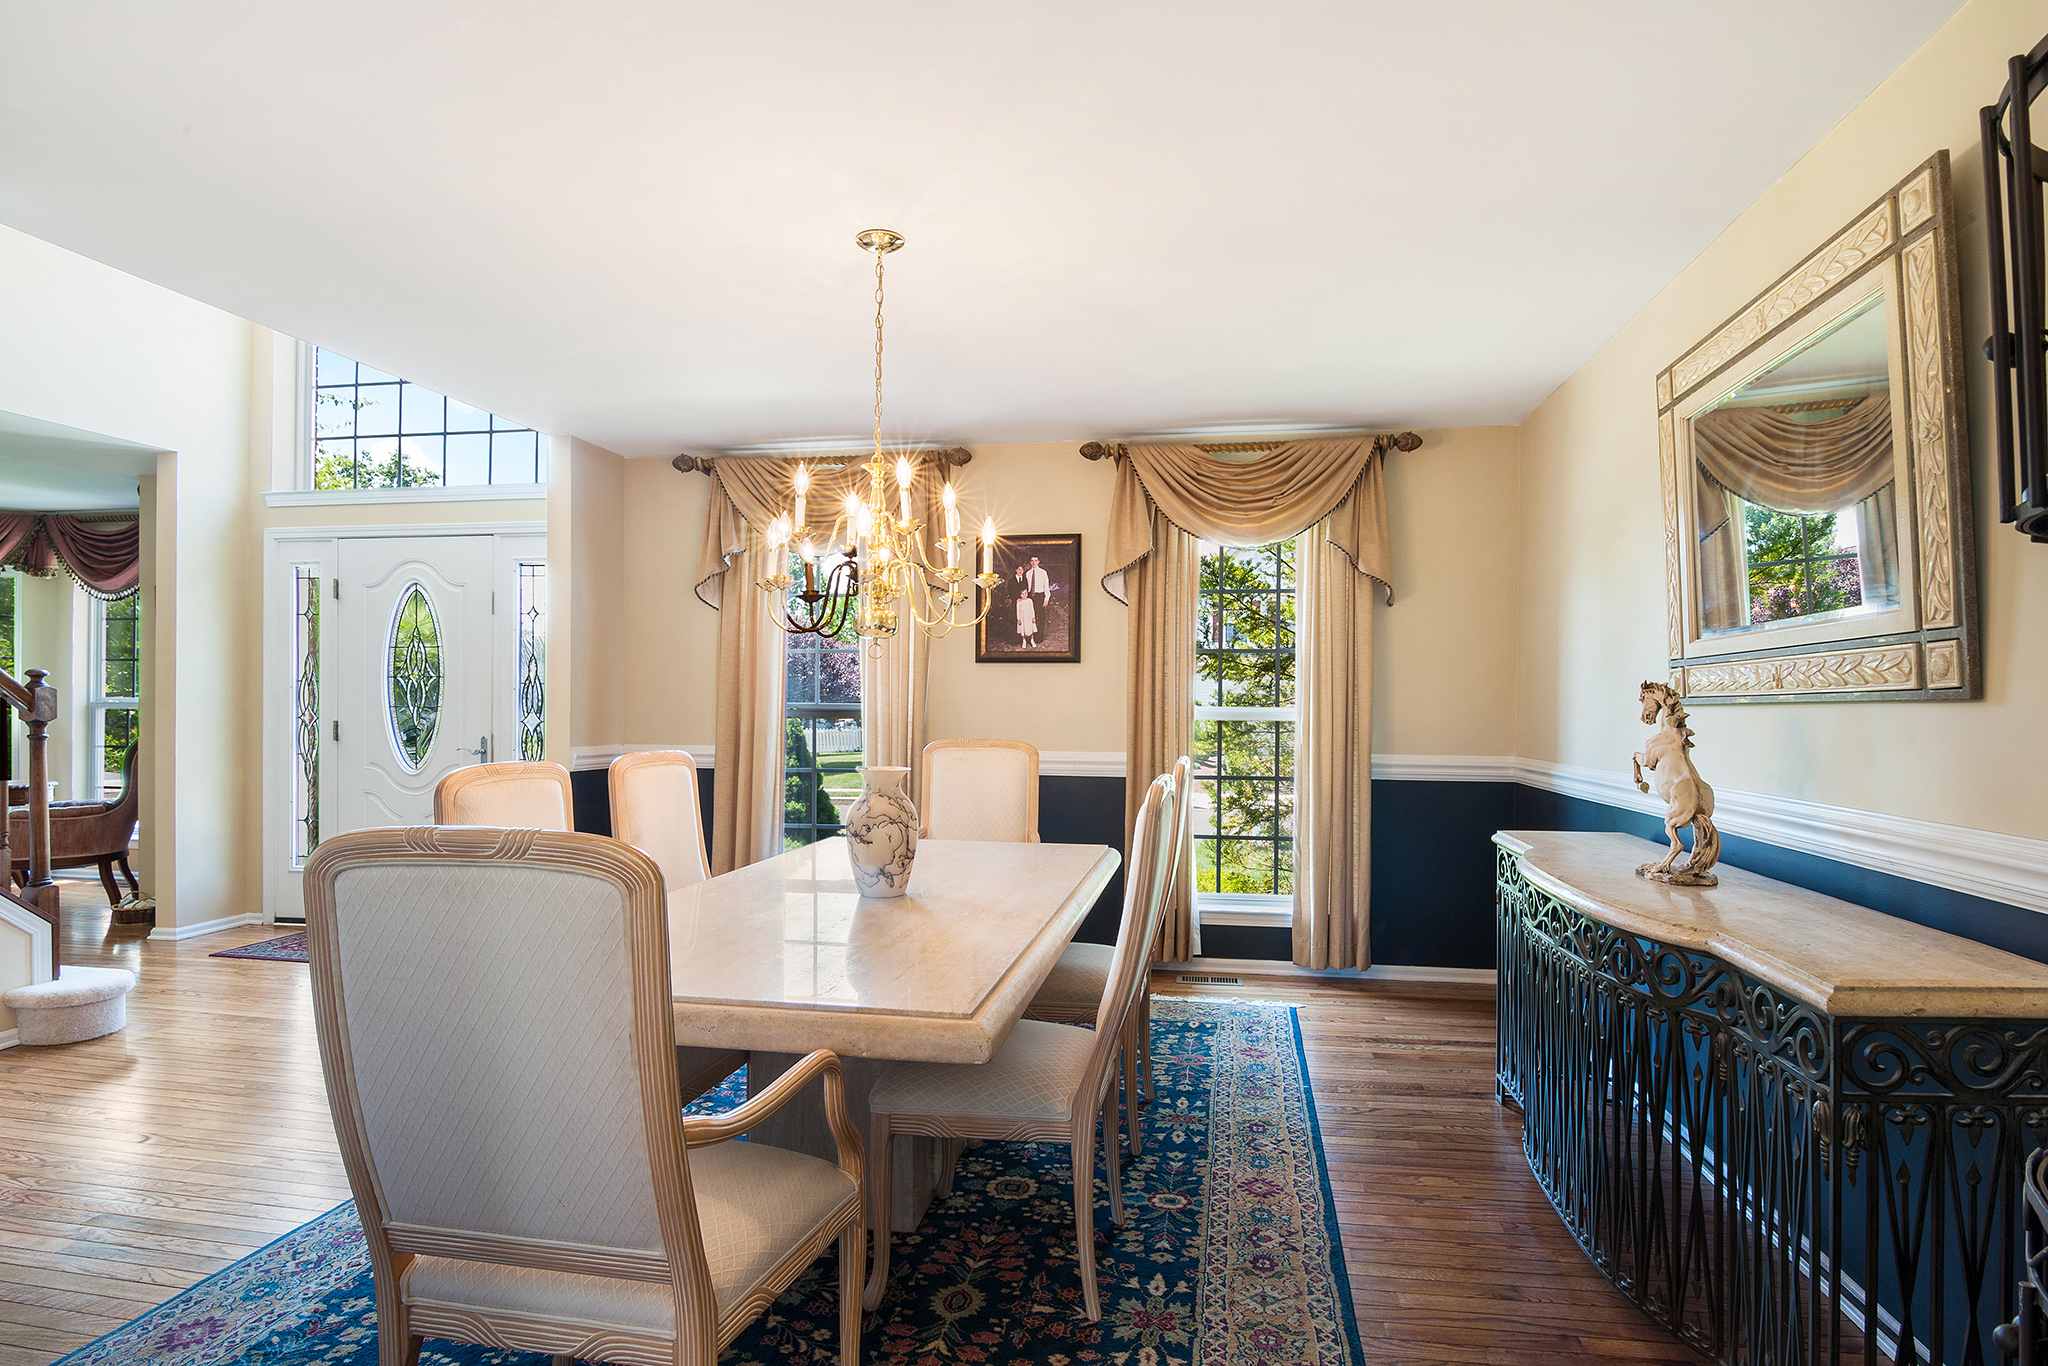 Peddler 39 s view in new hope pa homes for sale steve walny - Peddlers home design ...